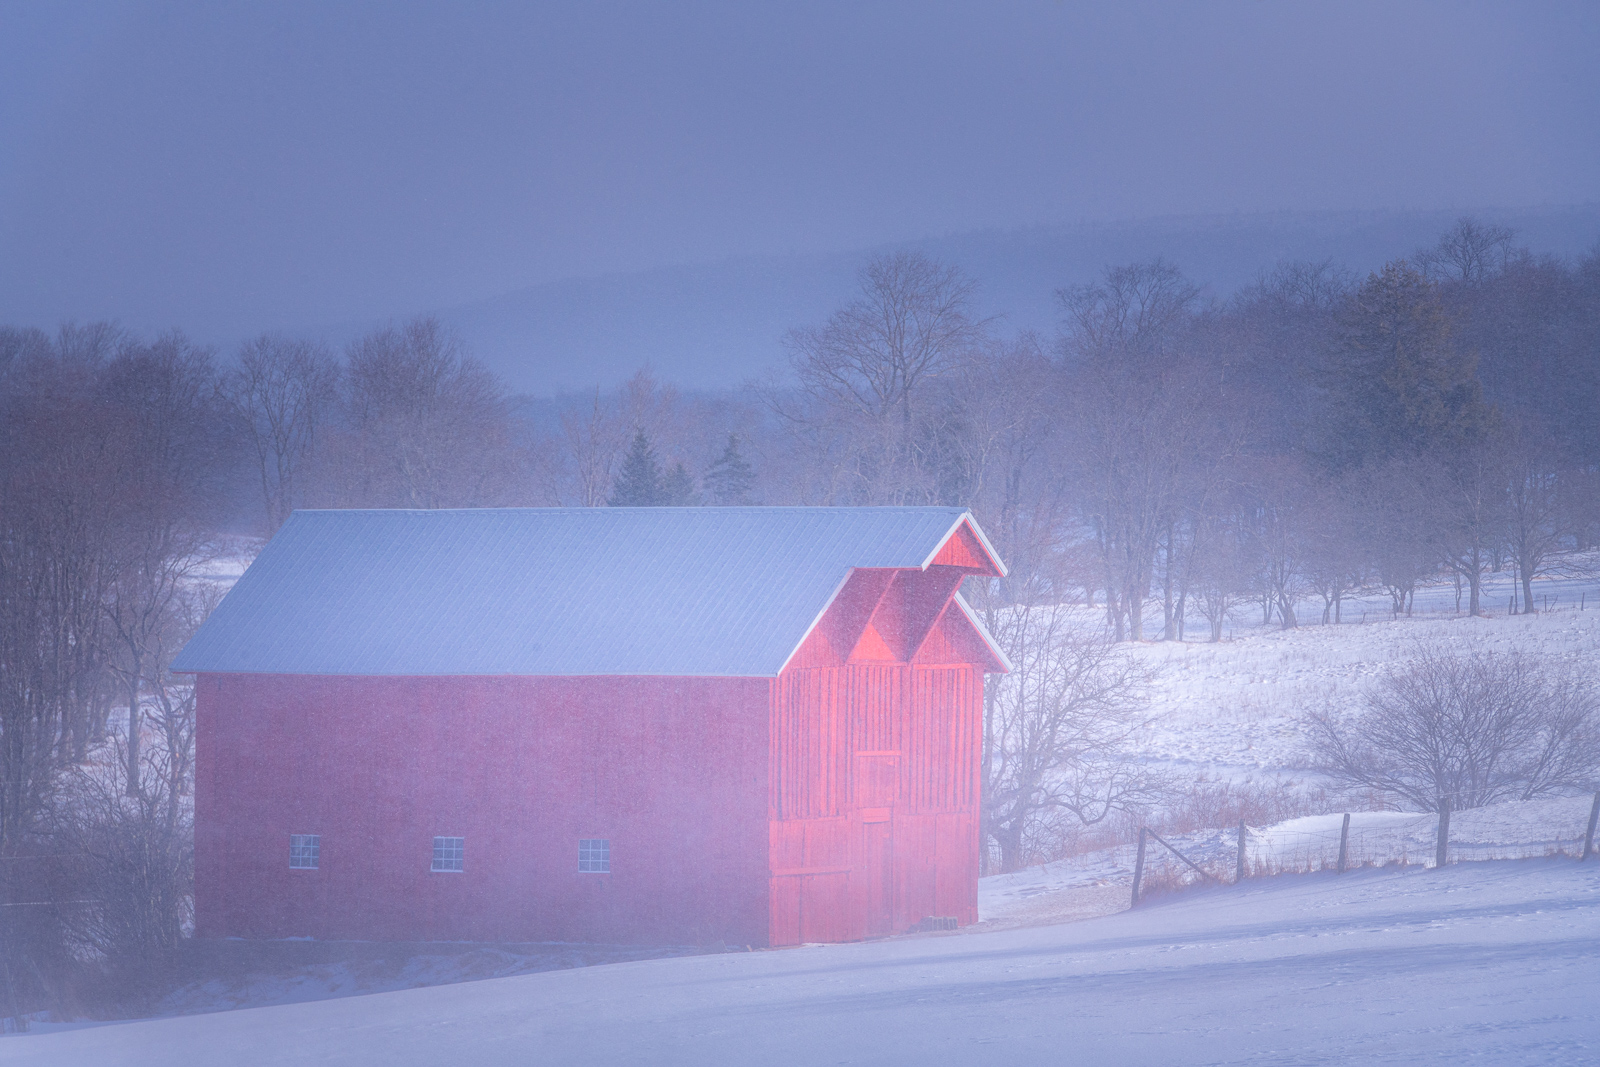 I captured this red barn during a snow storm in Canaan Valley, West Virgiina.